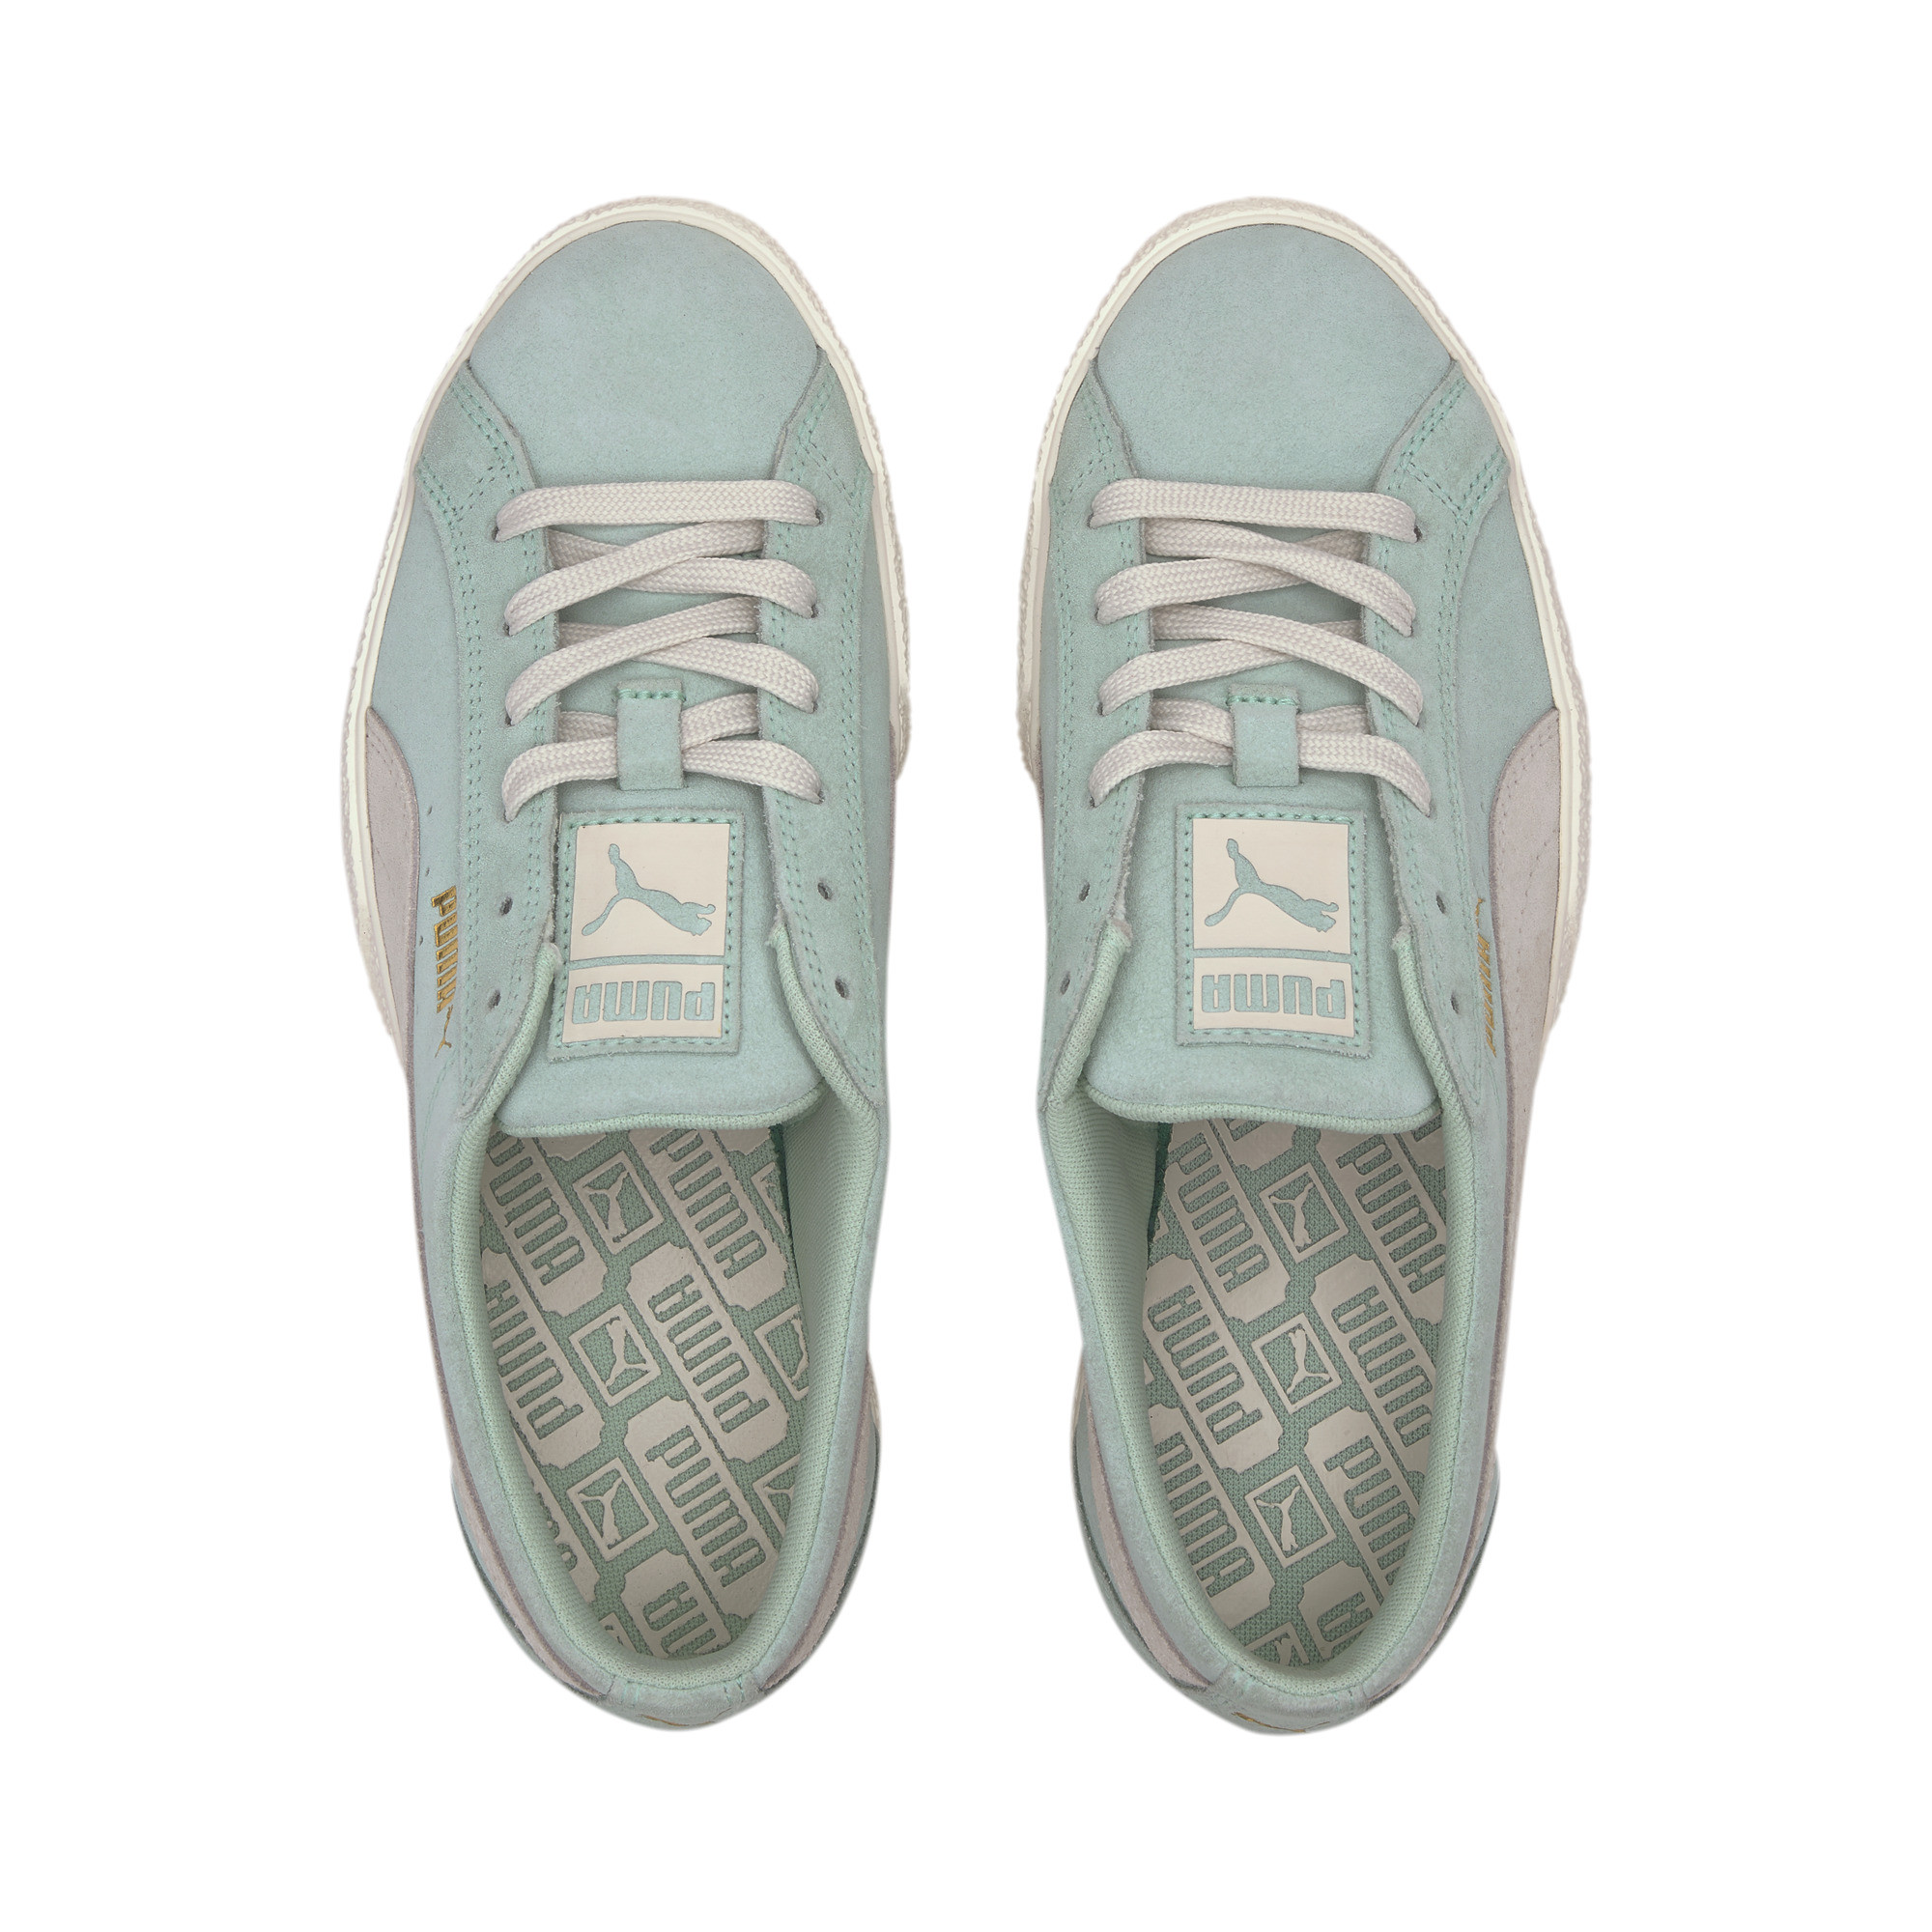 PUMA-Women-039-s-Love-Suede-Sneakers thumbnail 15